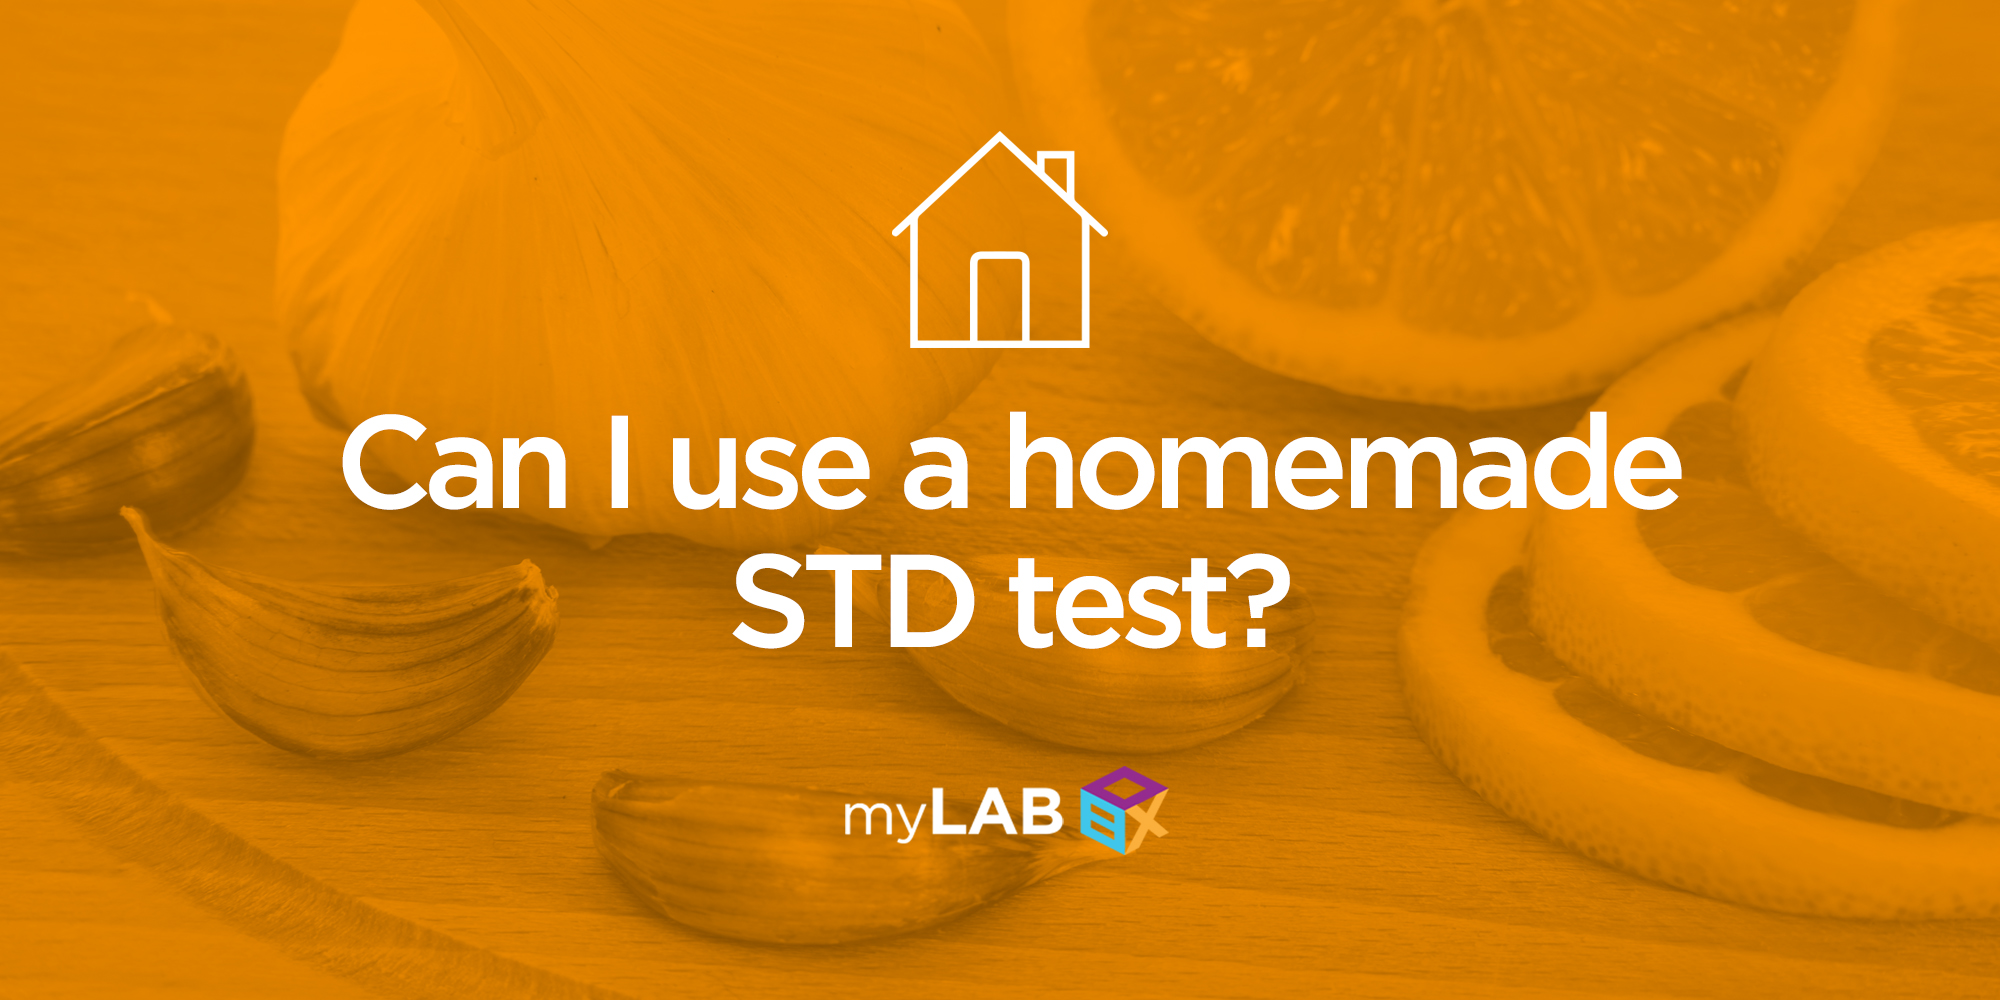 Can I use a homemade STD test?